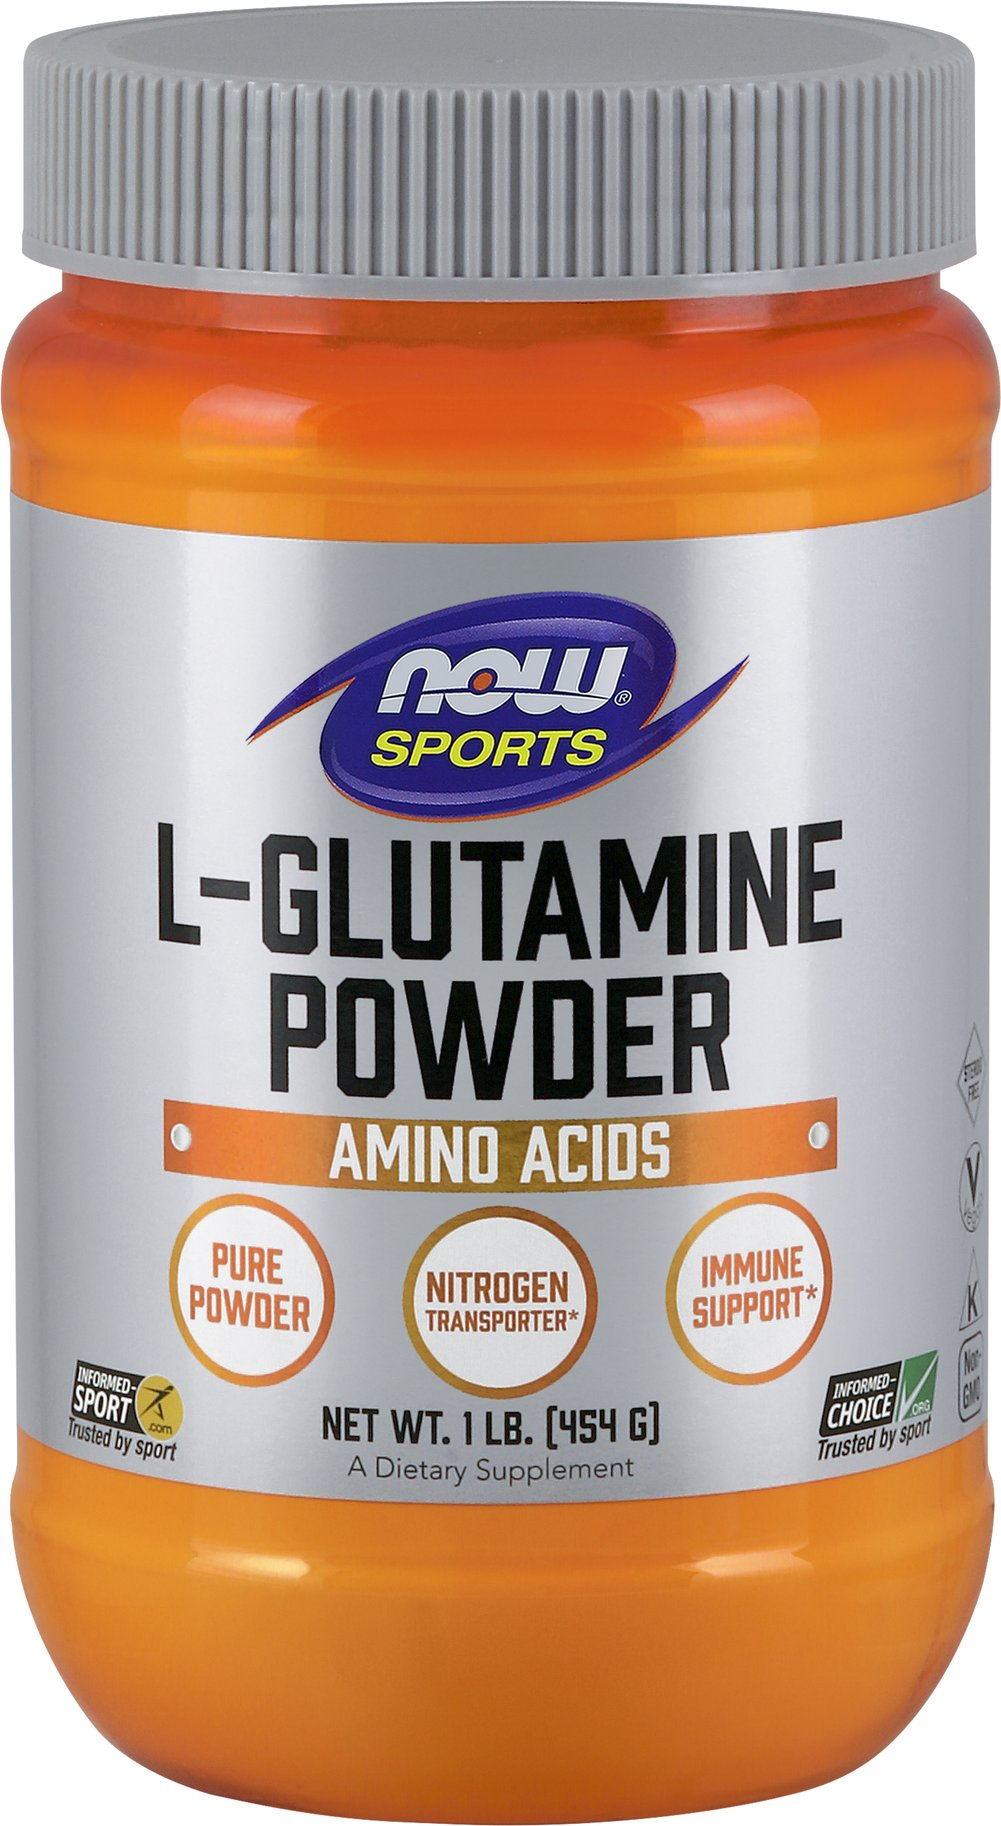 L-Glutamine Powder 5000 mg <p><strong>From the Manufacturer's Label:</strong></p><p>NOW® L-Glutamine Powder is a 100% pure, free-form, non-essential, amino acid and is the highest grade available.**</p><p>Manufactured by NOW® Foods</p> 1 lb Powder 5000 mg $22.99